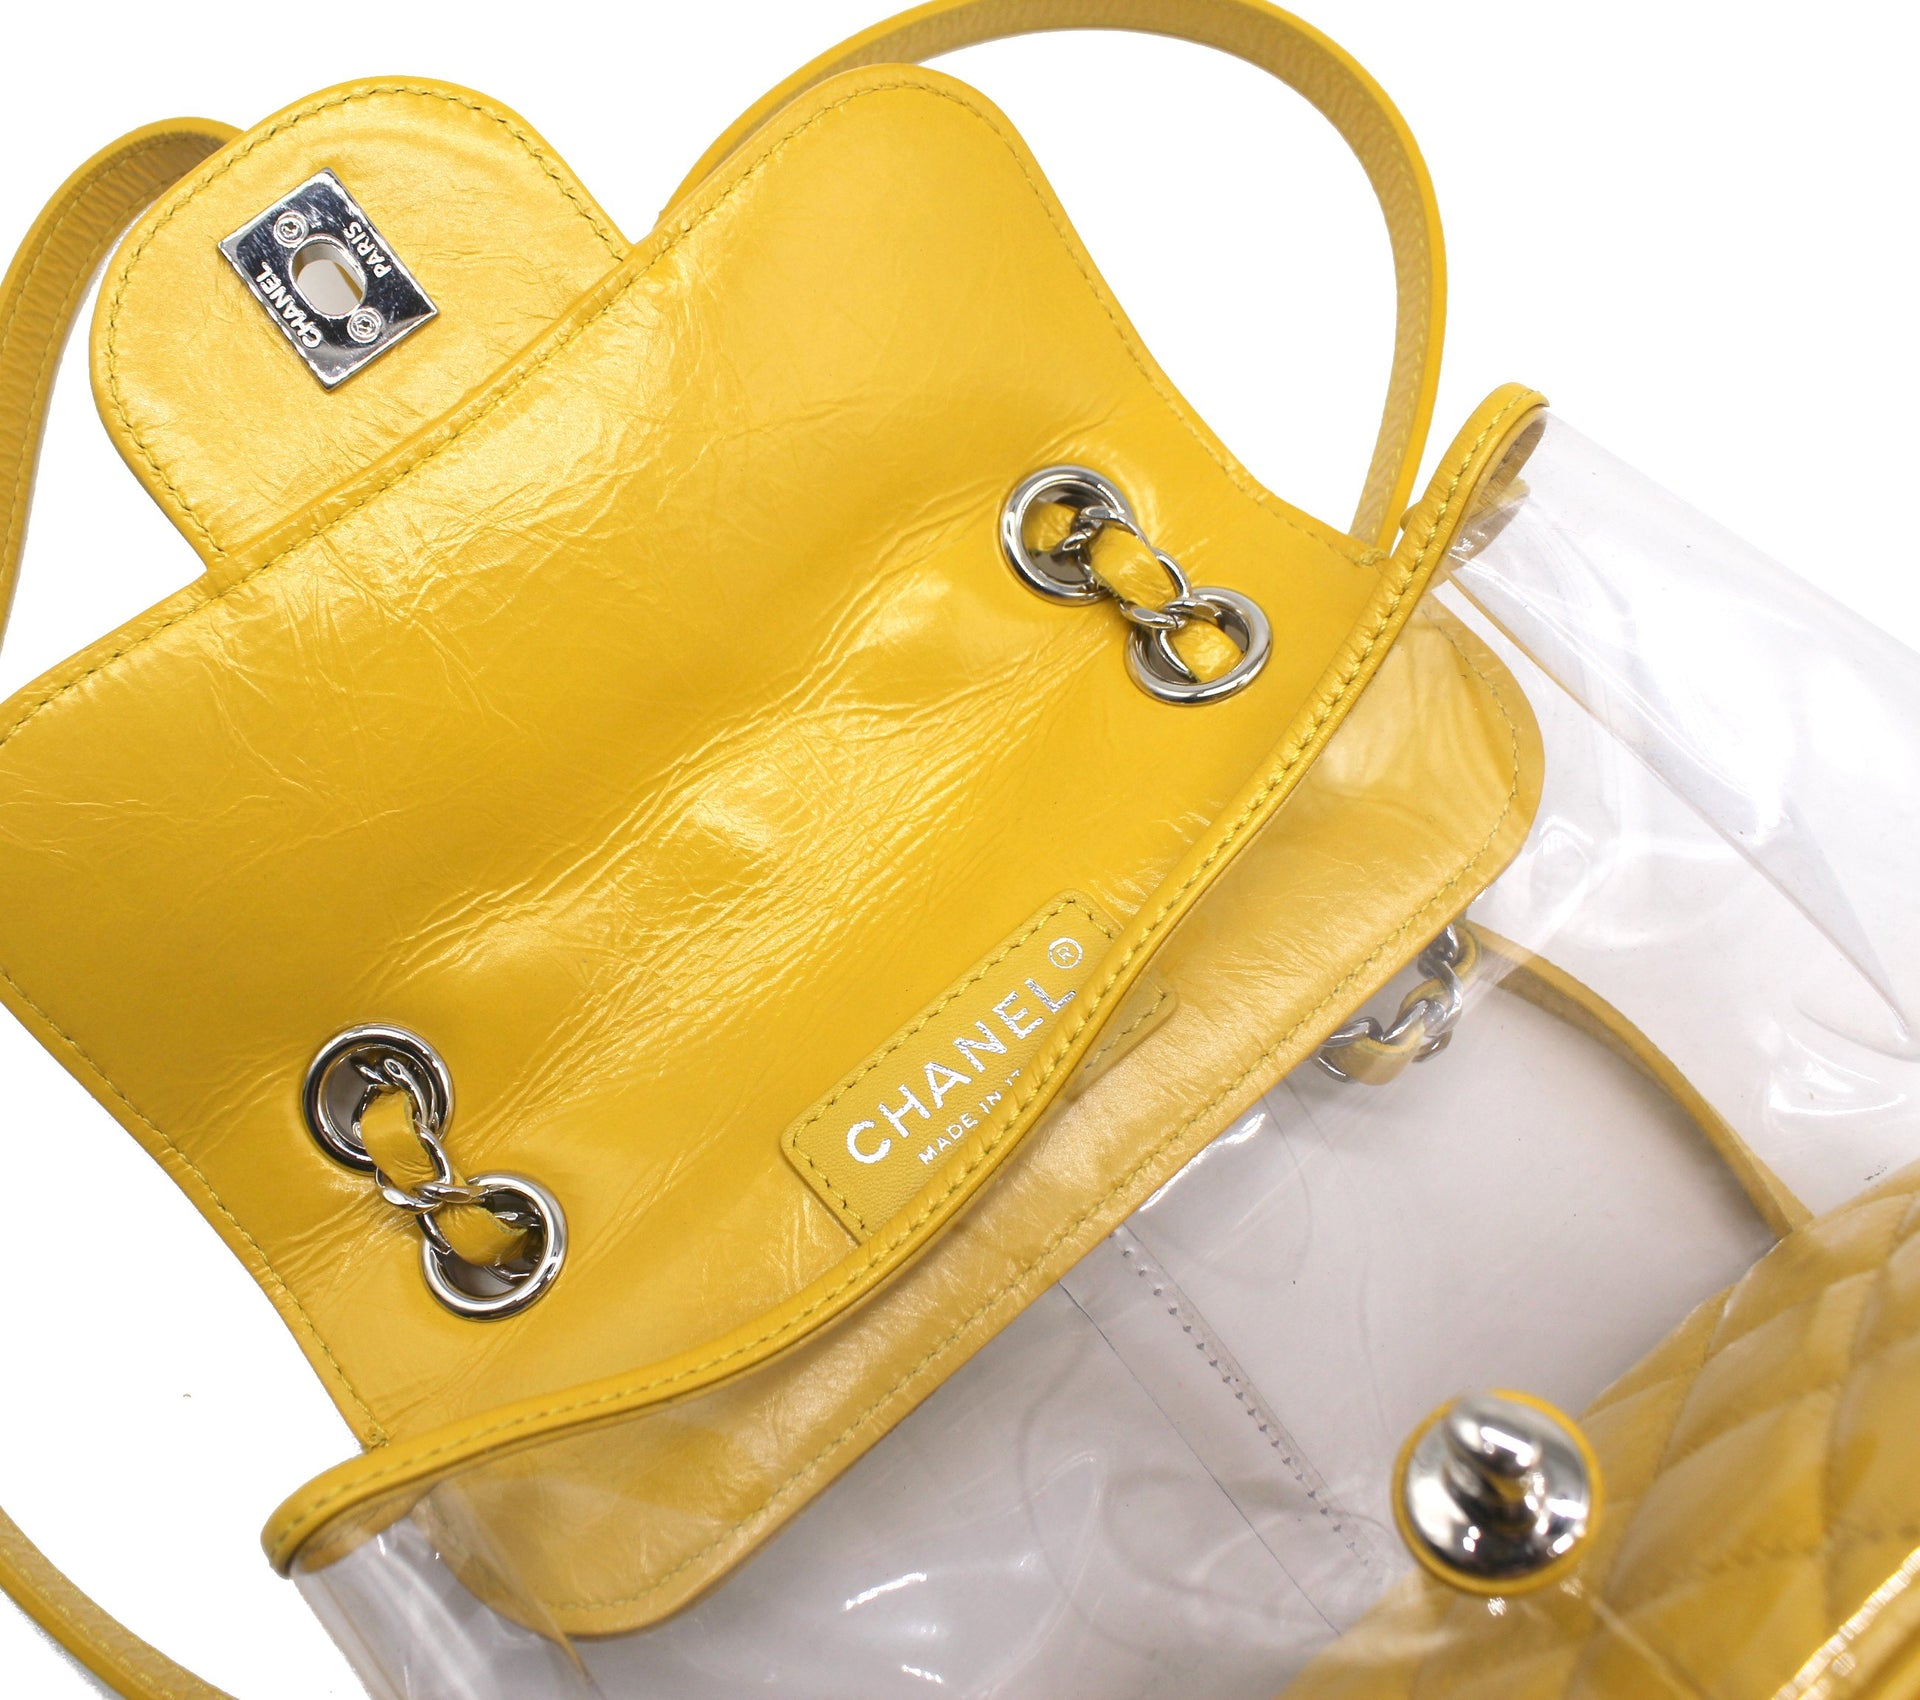 Chanel Classic Flap Crumpled Vanity and Resin Yellow Leather Pvc Backpack